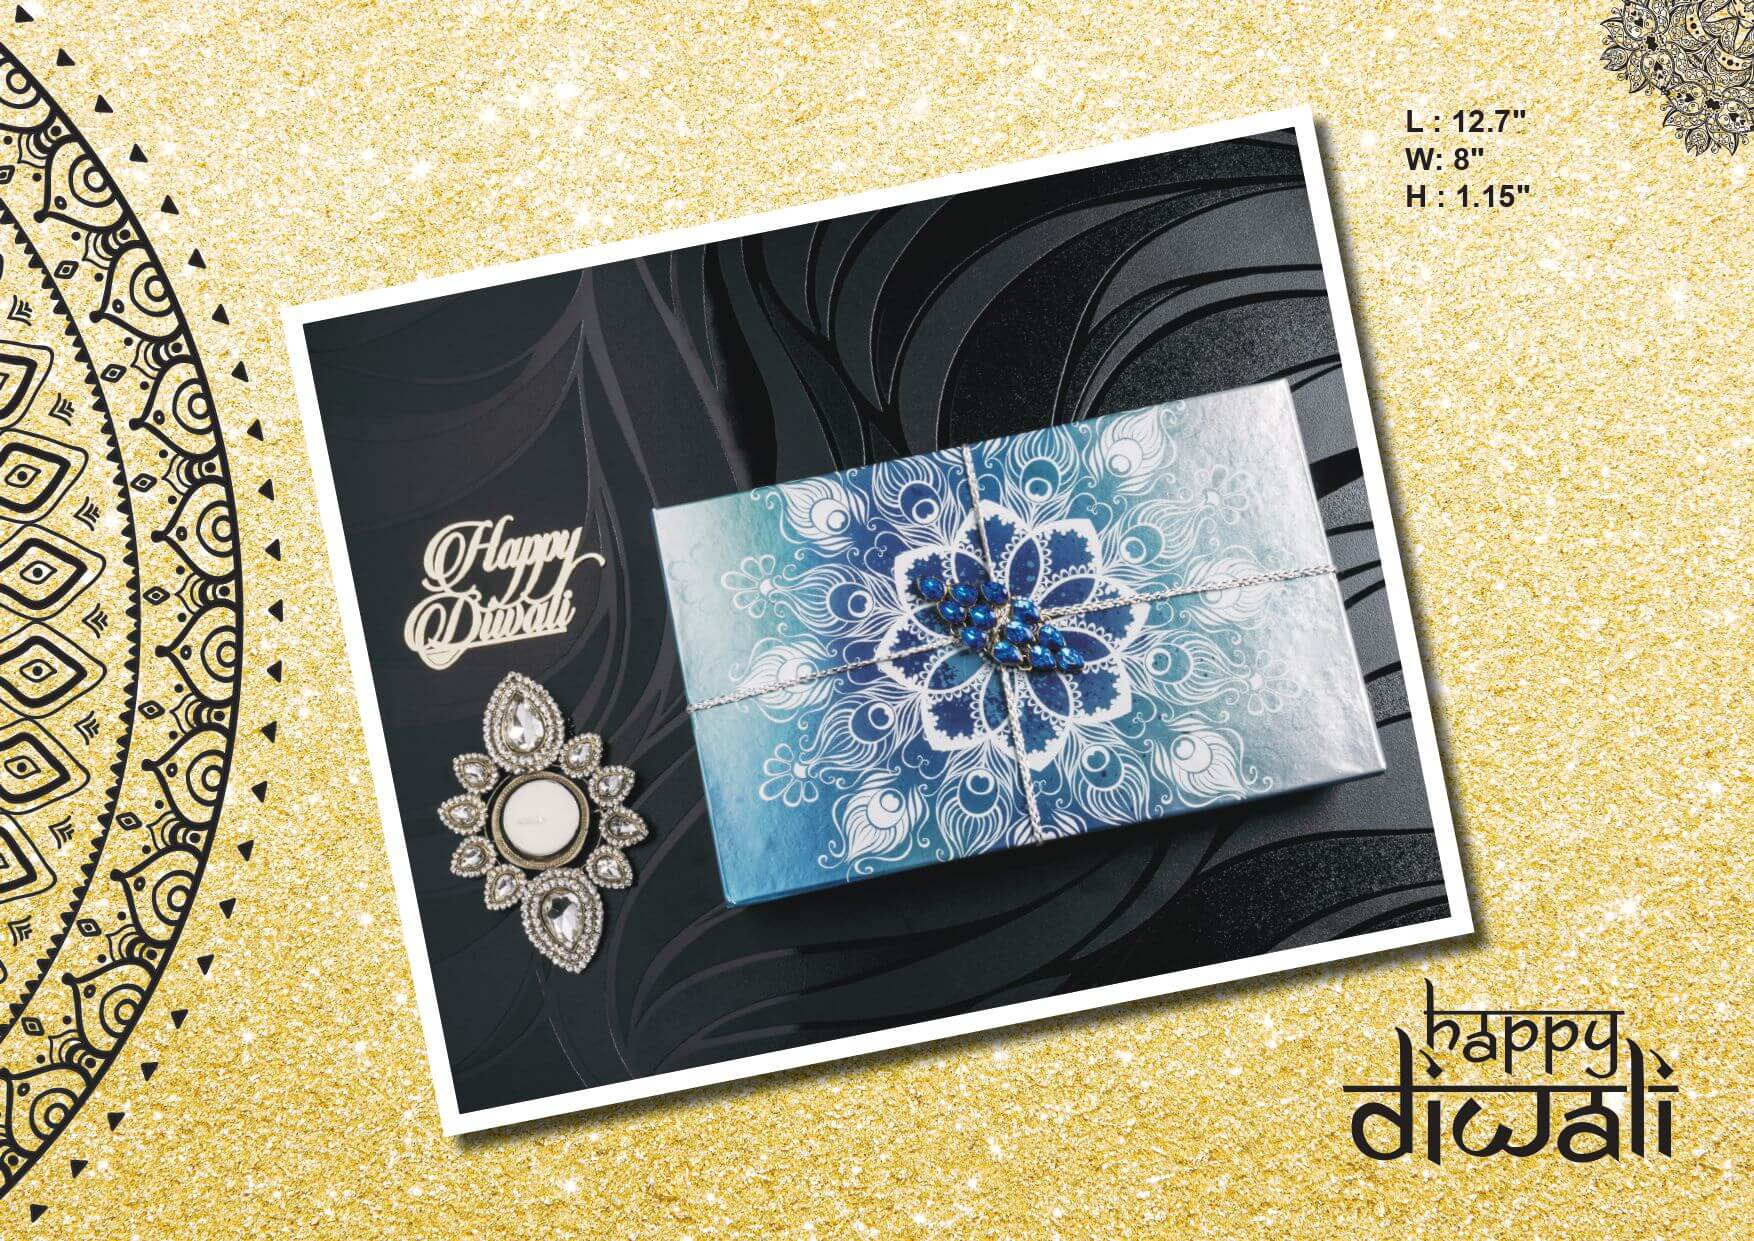 Diwali Gift Hampers Ideas PRODUCT NO 008